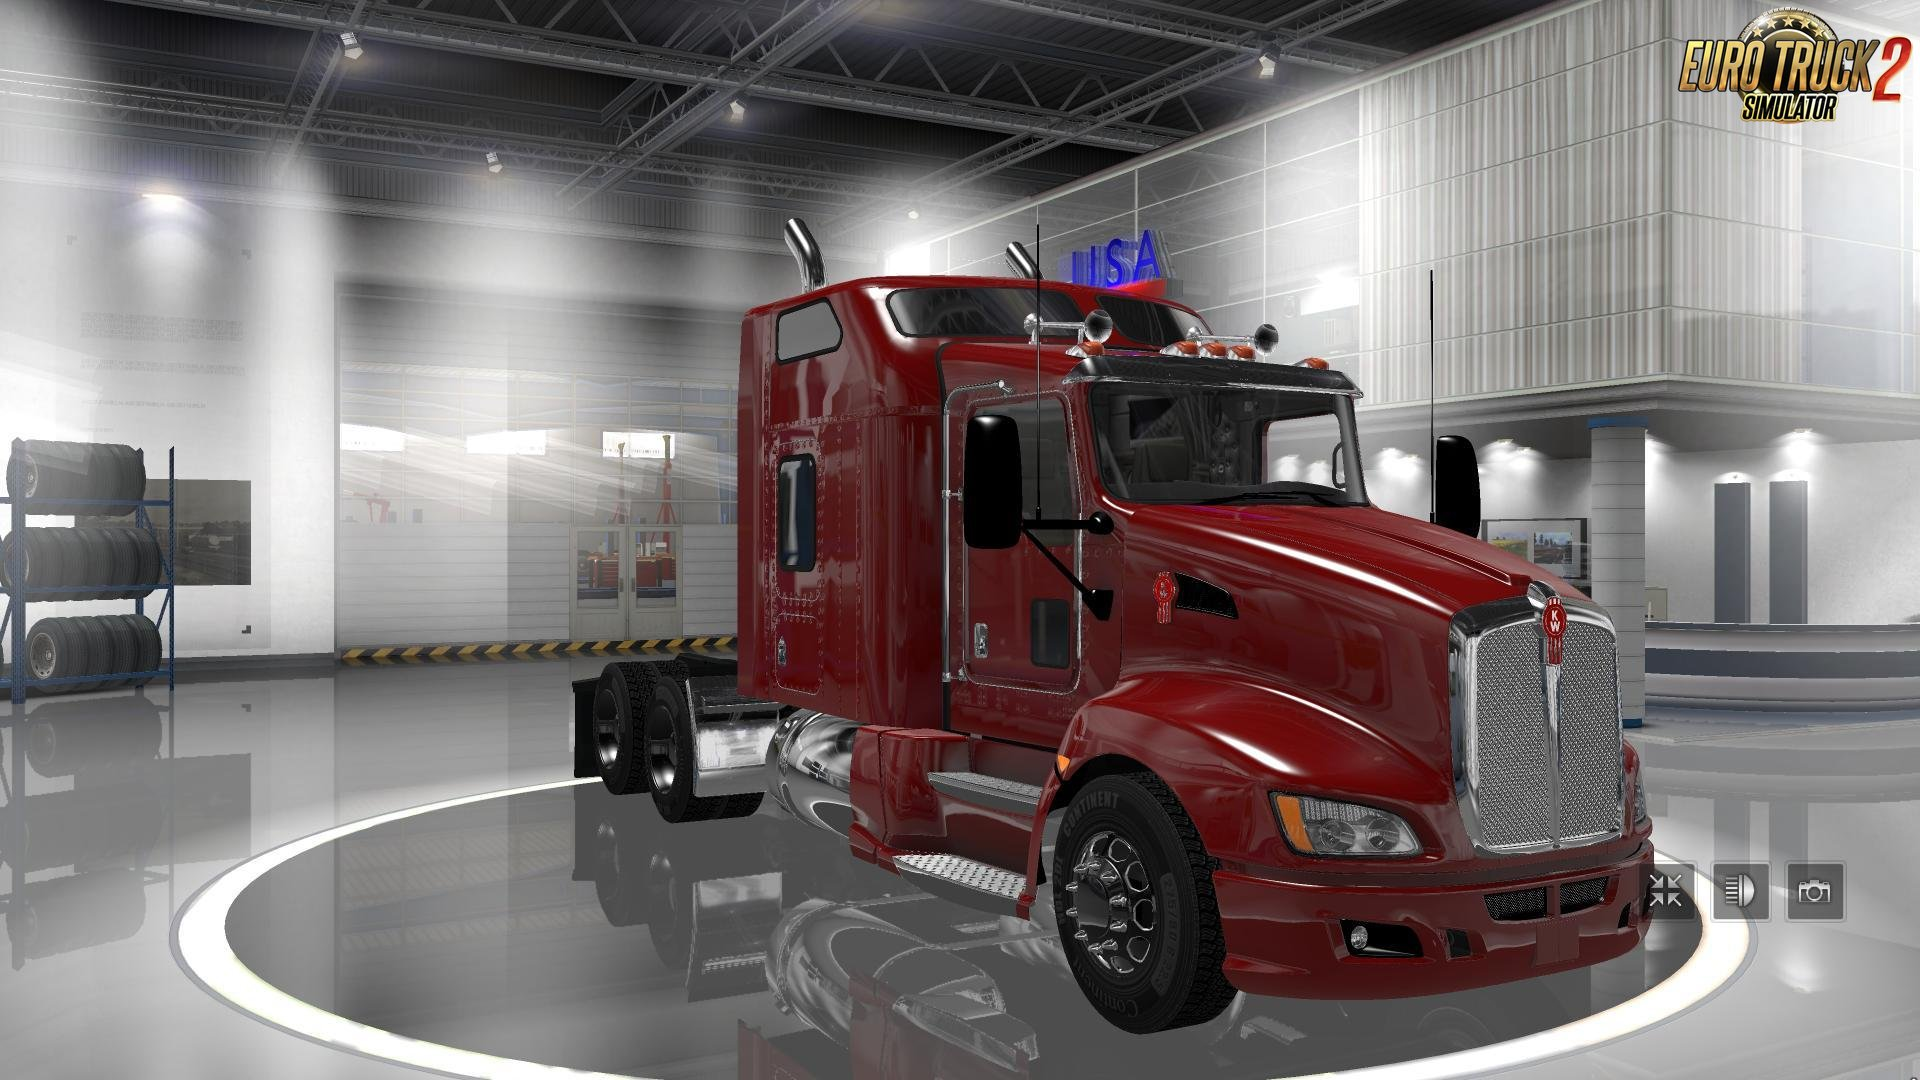 Pack American trucks for Mario Map v11.8-v11.9